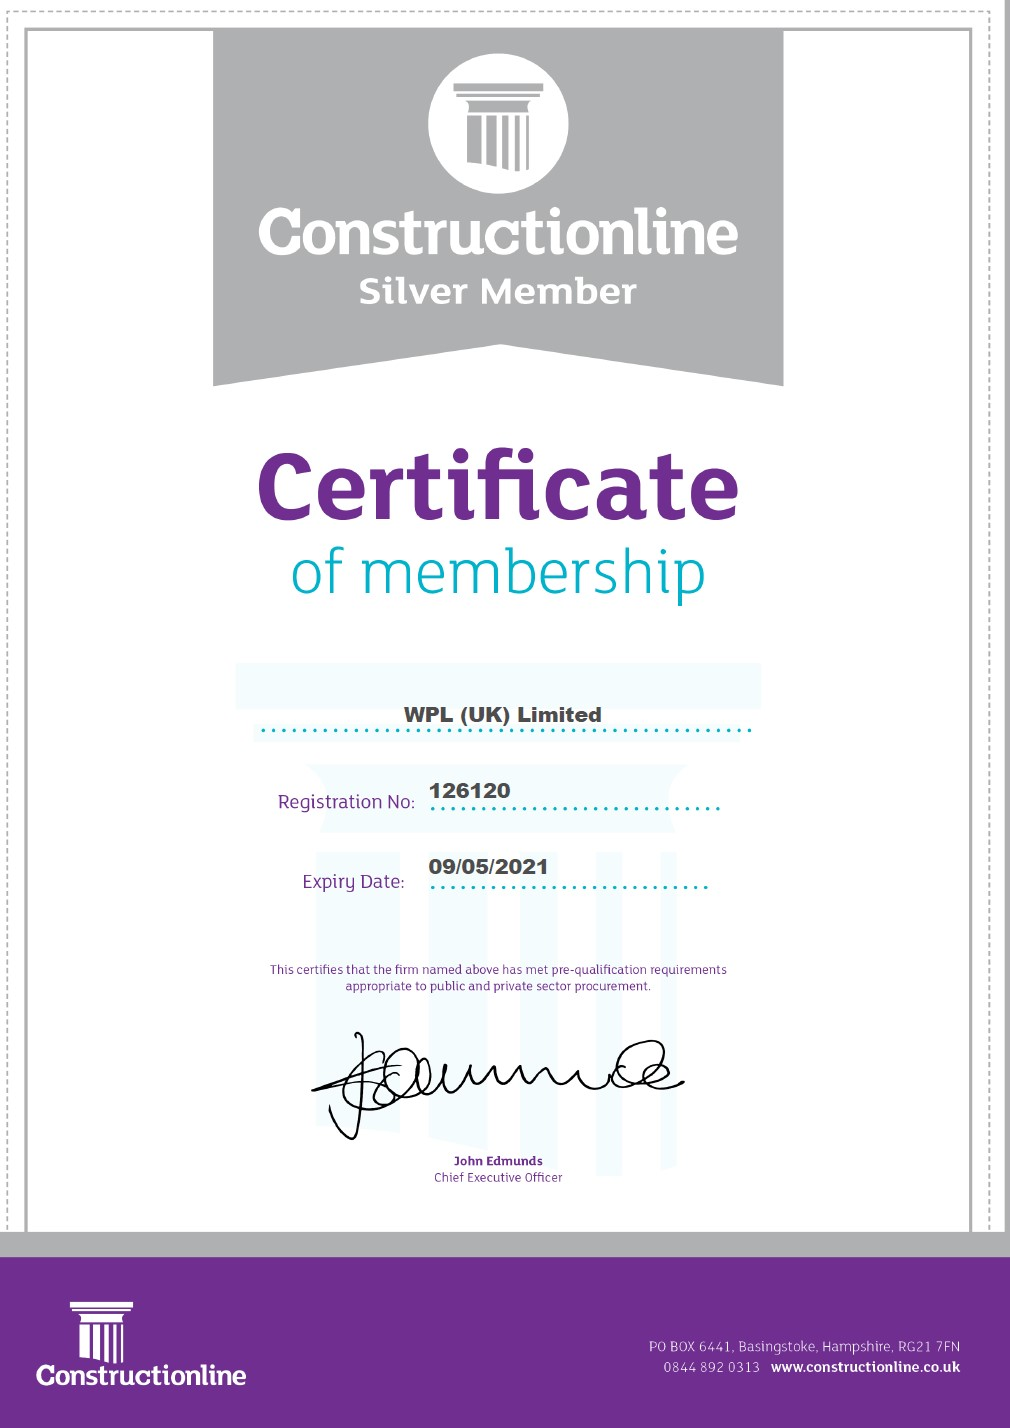 WPLUK Constructionline SILVER Certificate to 9th May 2021